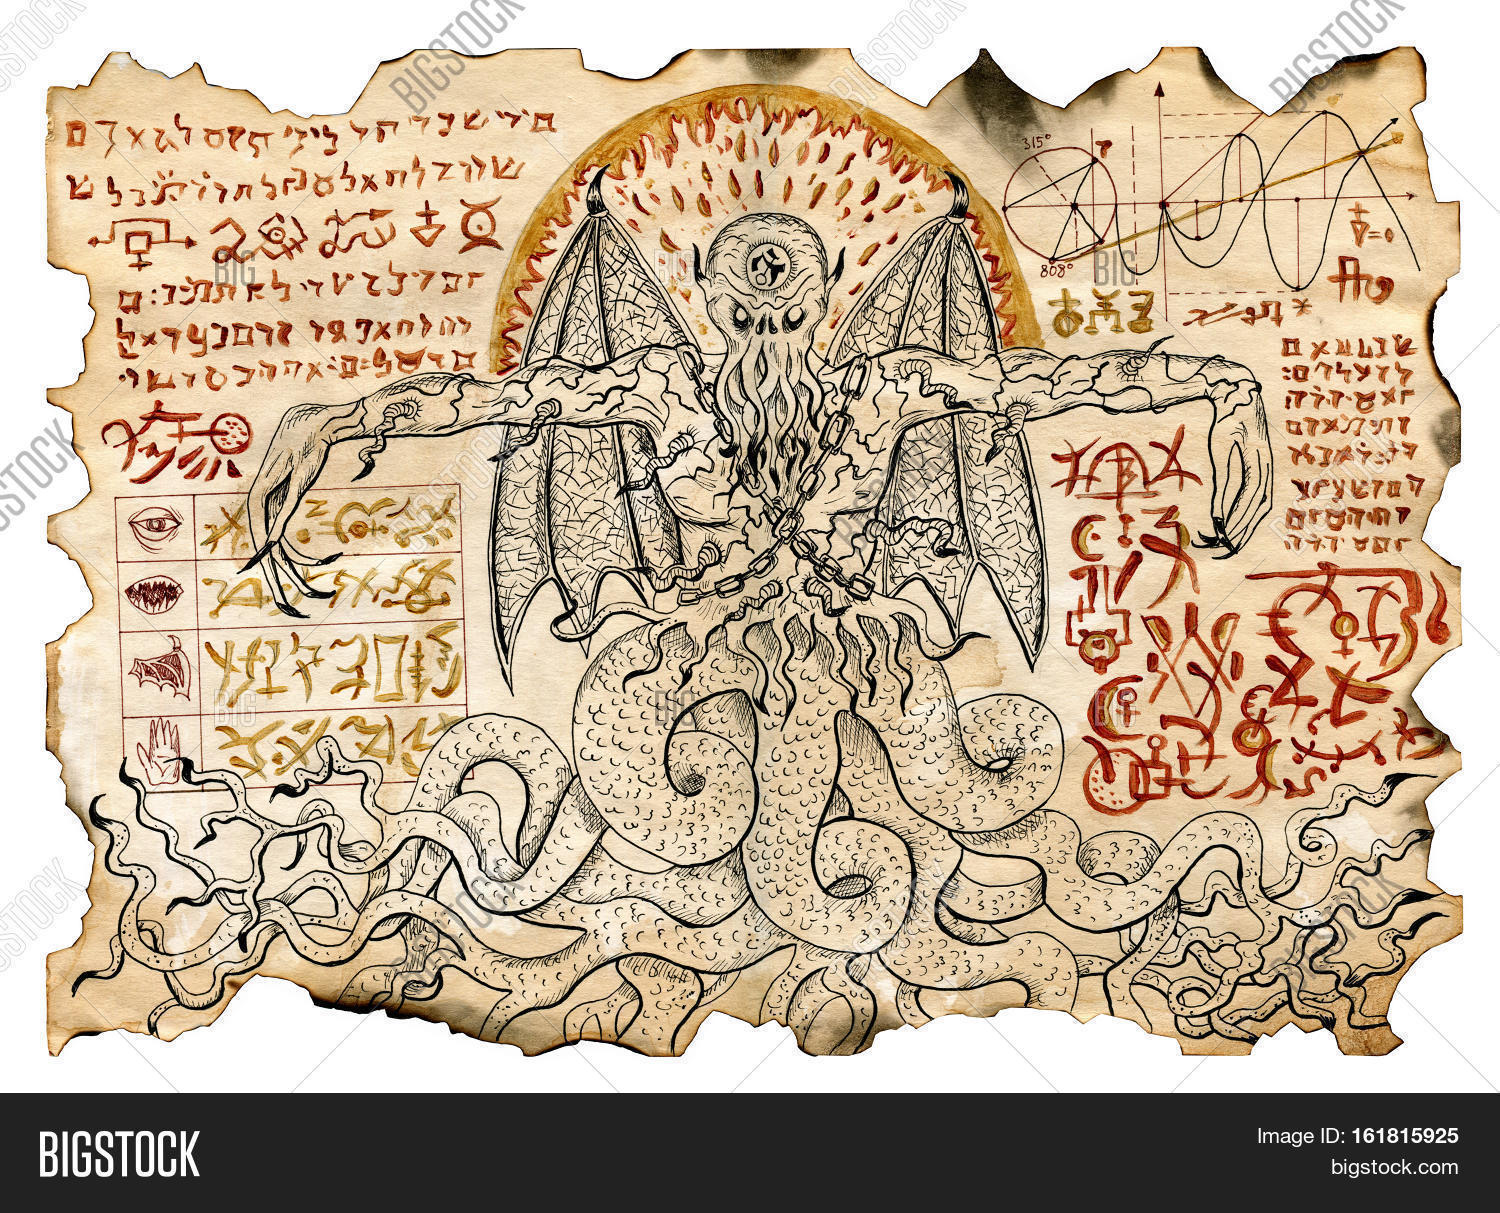 Old parchment mystic drawings evil image photo bigstock old parchment with mystic drawings with evil demon and black magic symbols occult and esoteric biocorpaavc